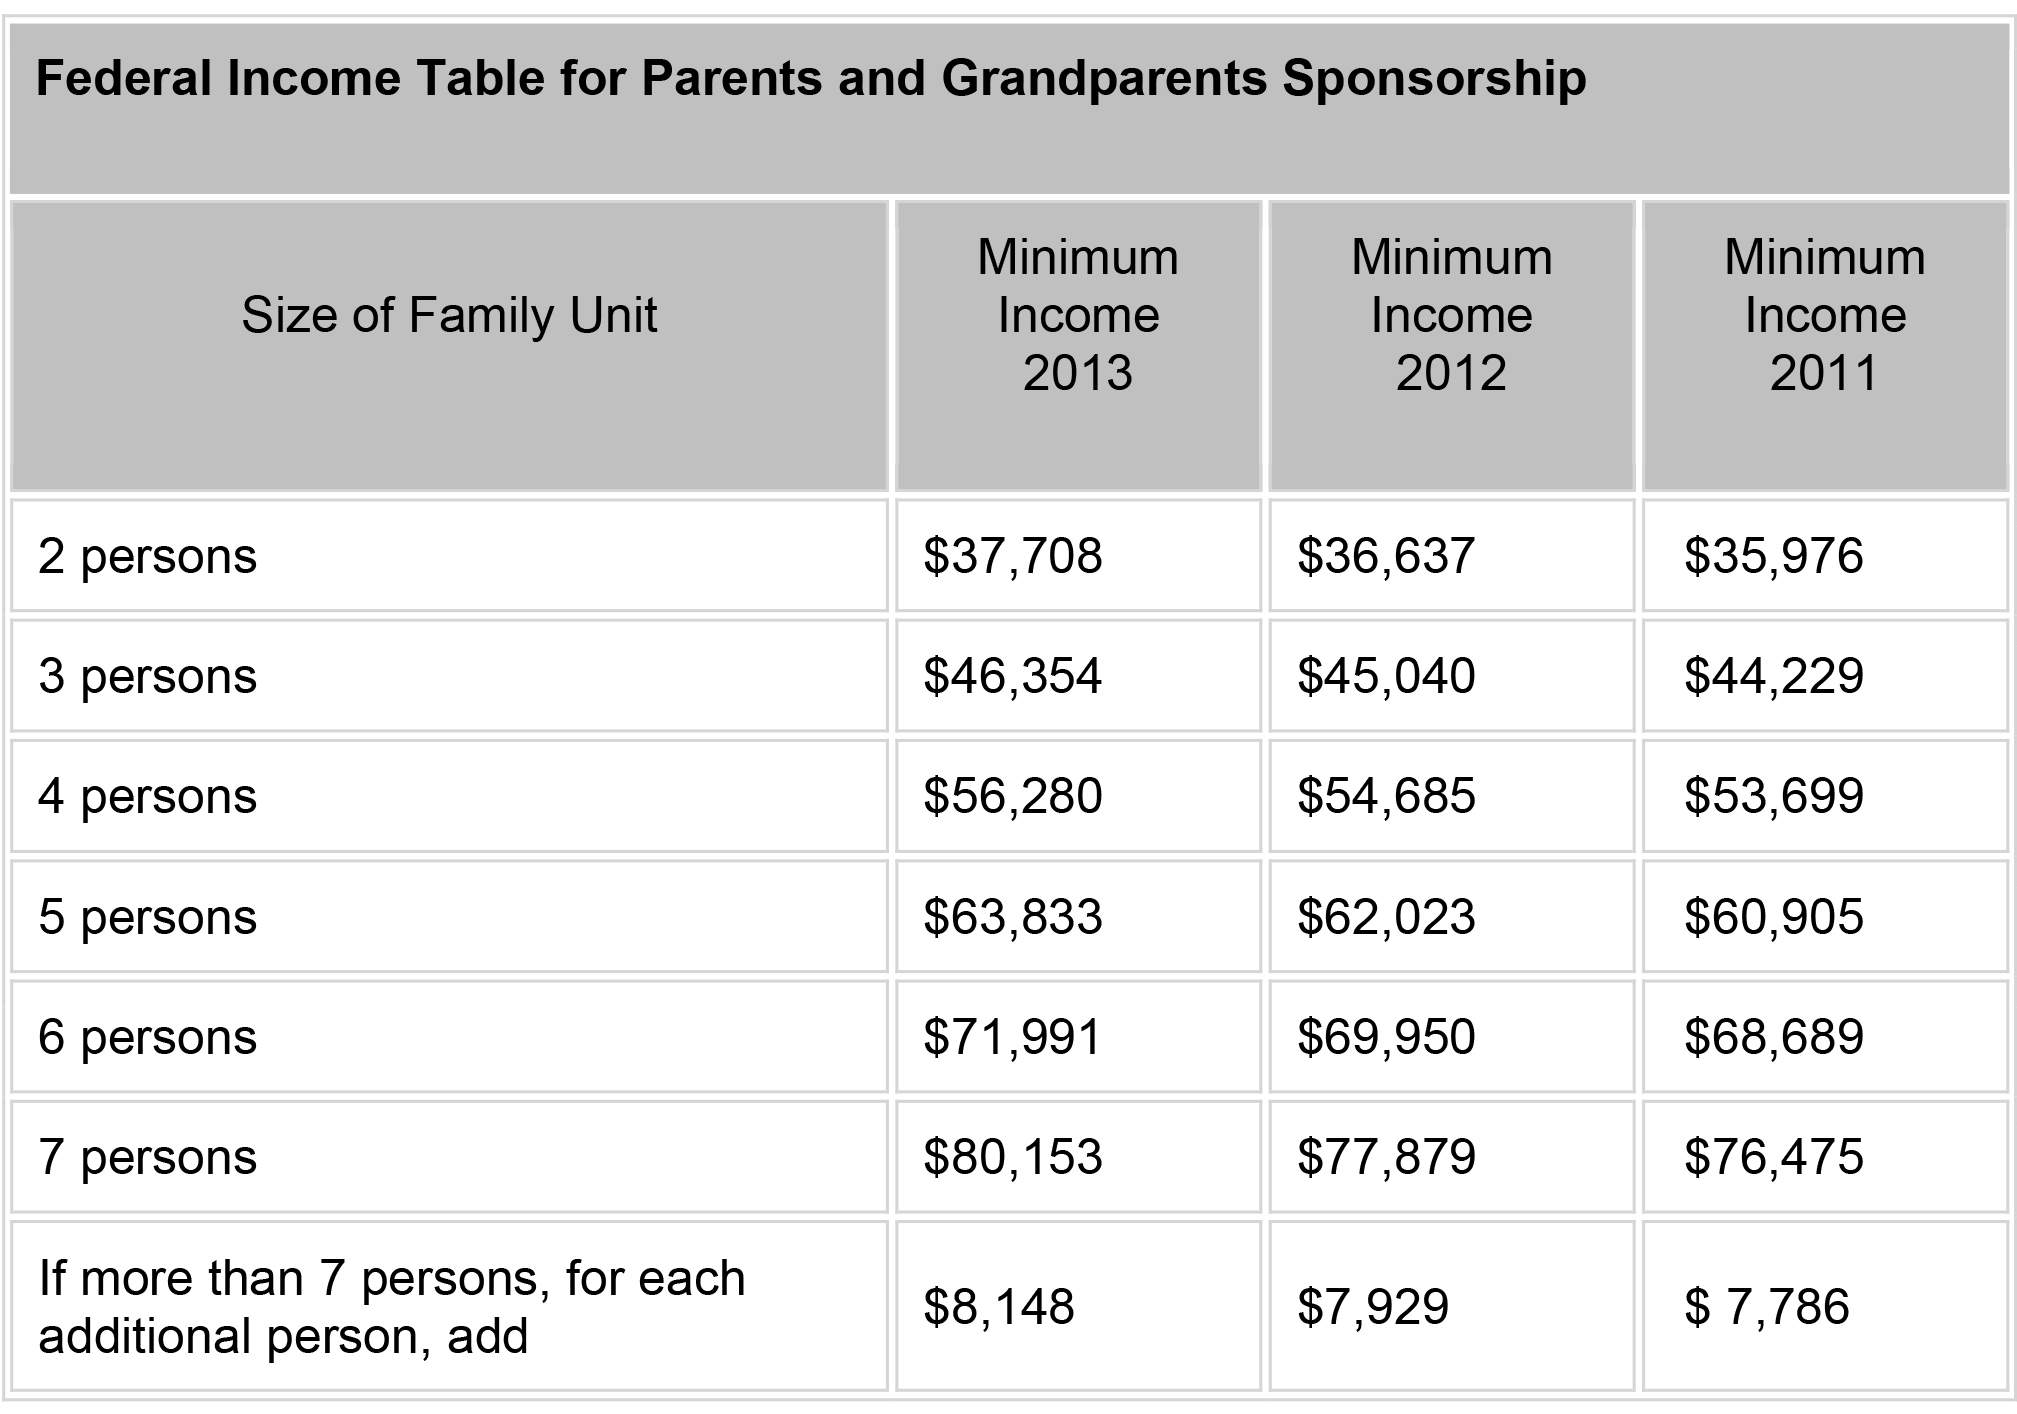 Federal Income Table for Parents and Grandparents Sponsorship